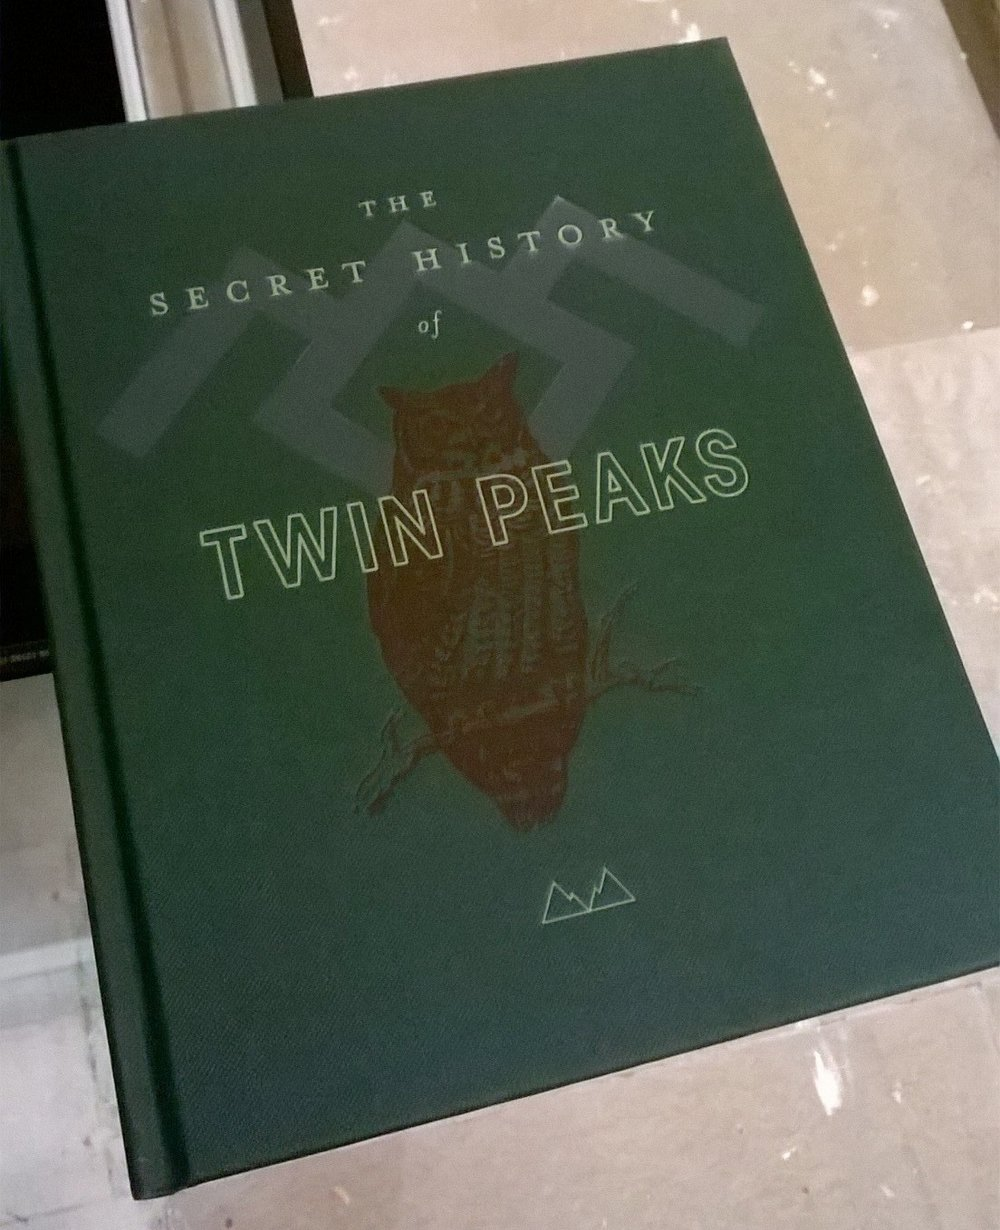 The Secret History of Twin Peaks is a beautifully presented book ©Macmillan/ Mark Frost